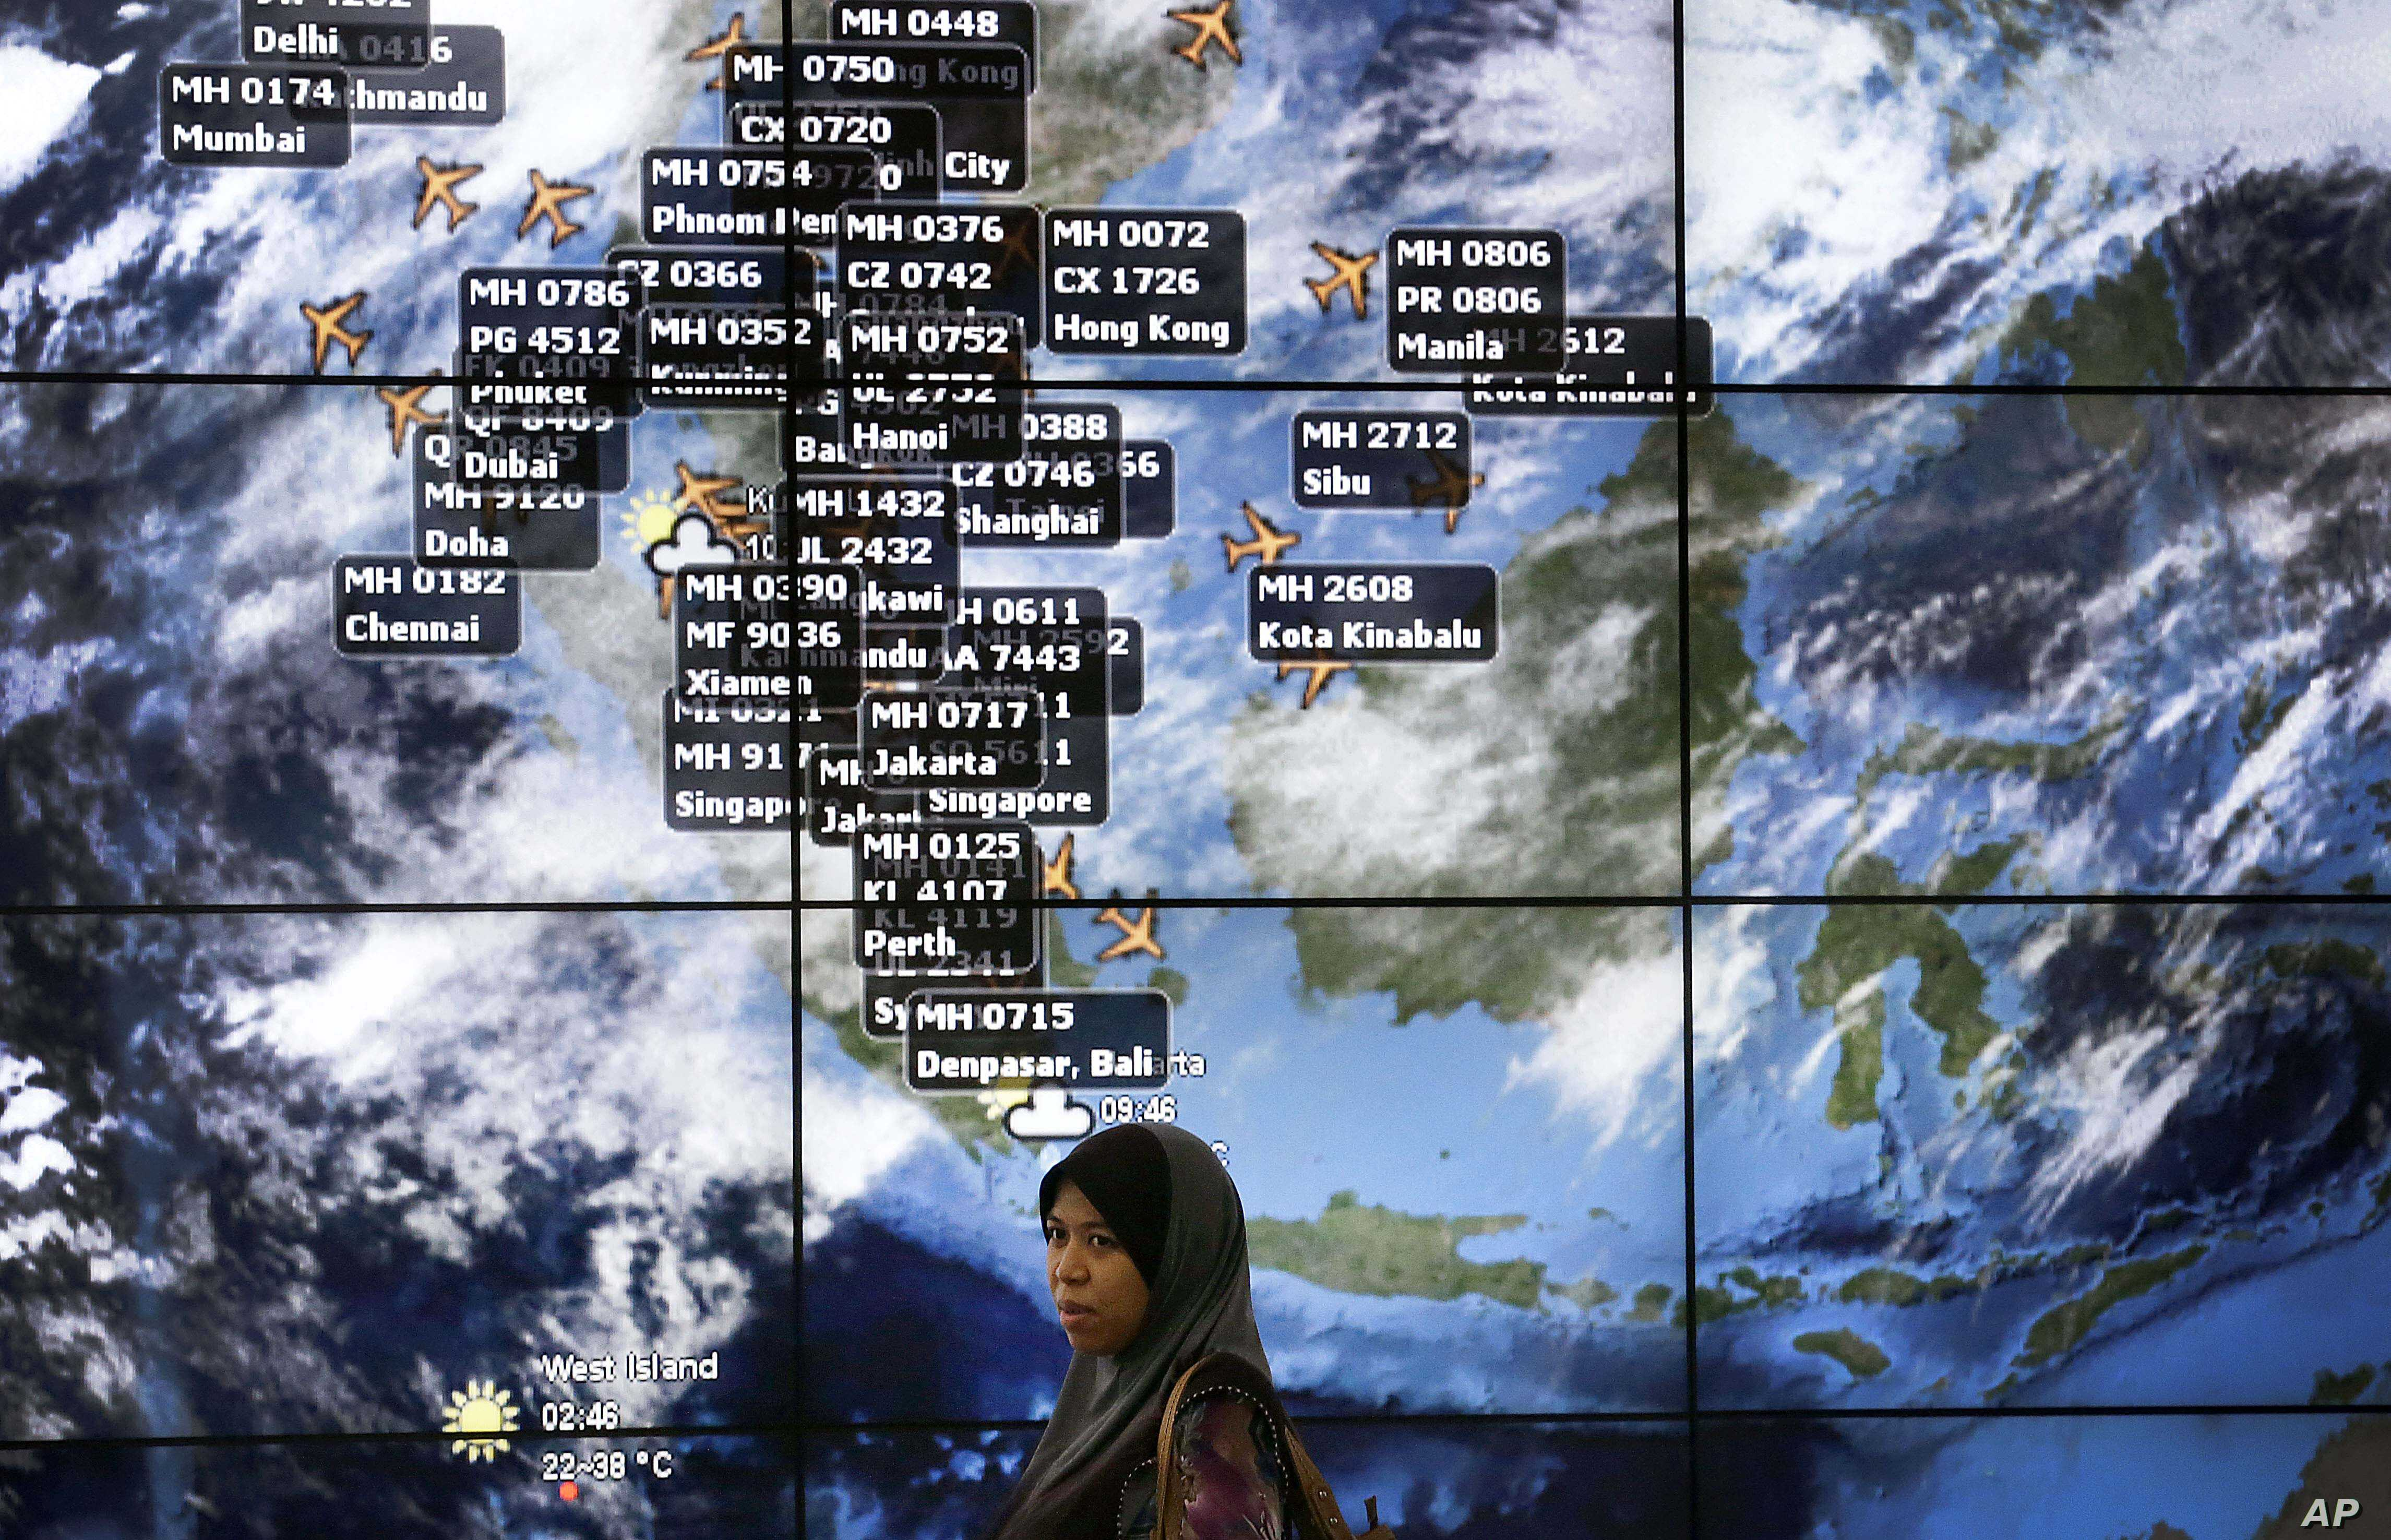 A lady stands in front of an electronic display showing live information of flight positions according to predicted time and flight duration calculations at the Kuala Lumpur International Airport, Sunday, March 16, 2014 in Sepang, Malaysia. Malaysian